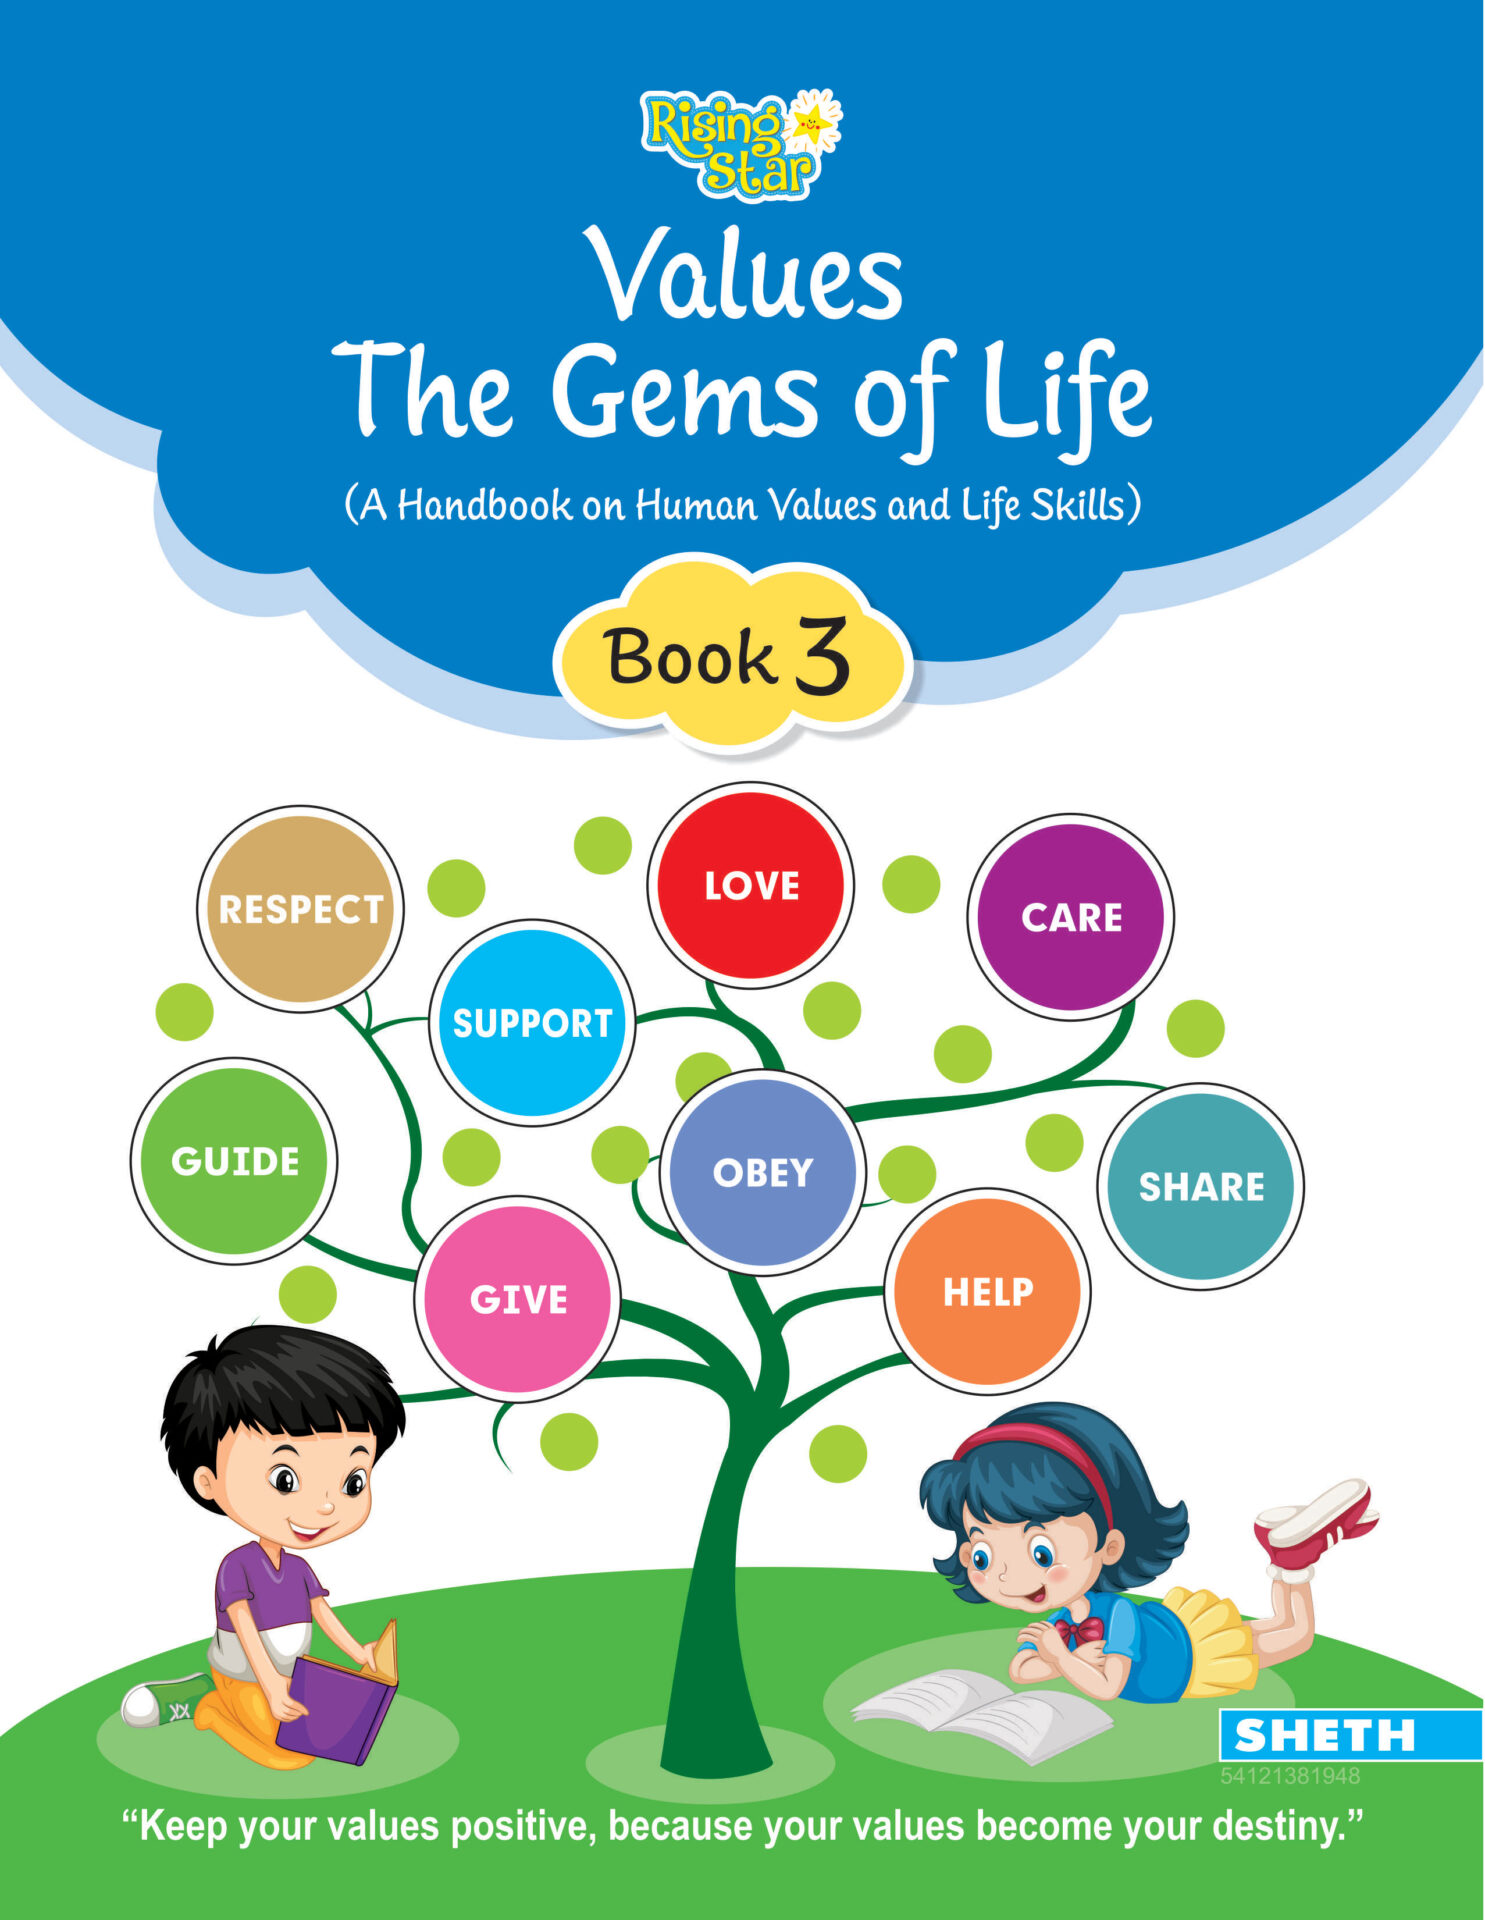 Rising Star Values The Gems of Life Book 3 1 1